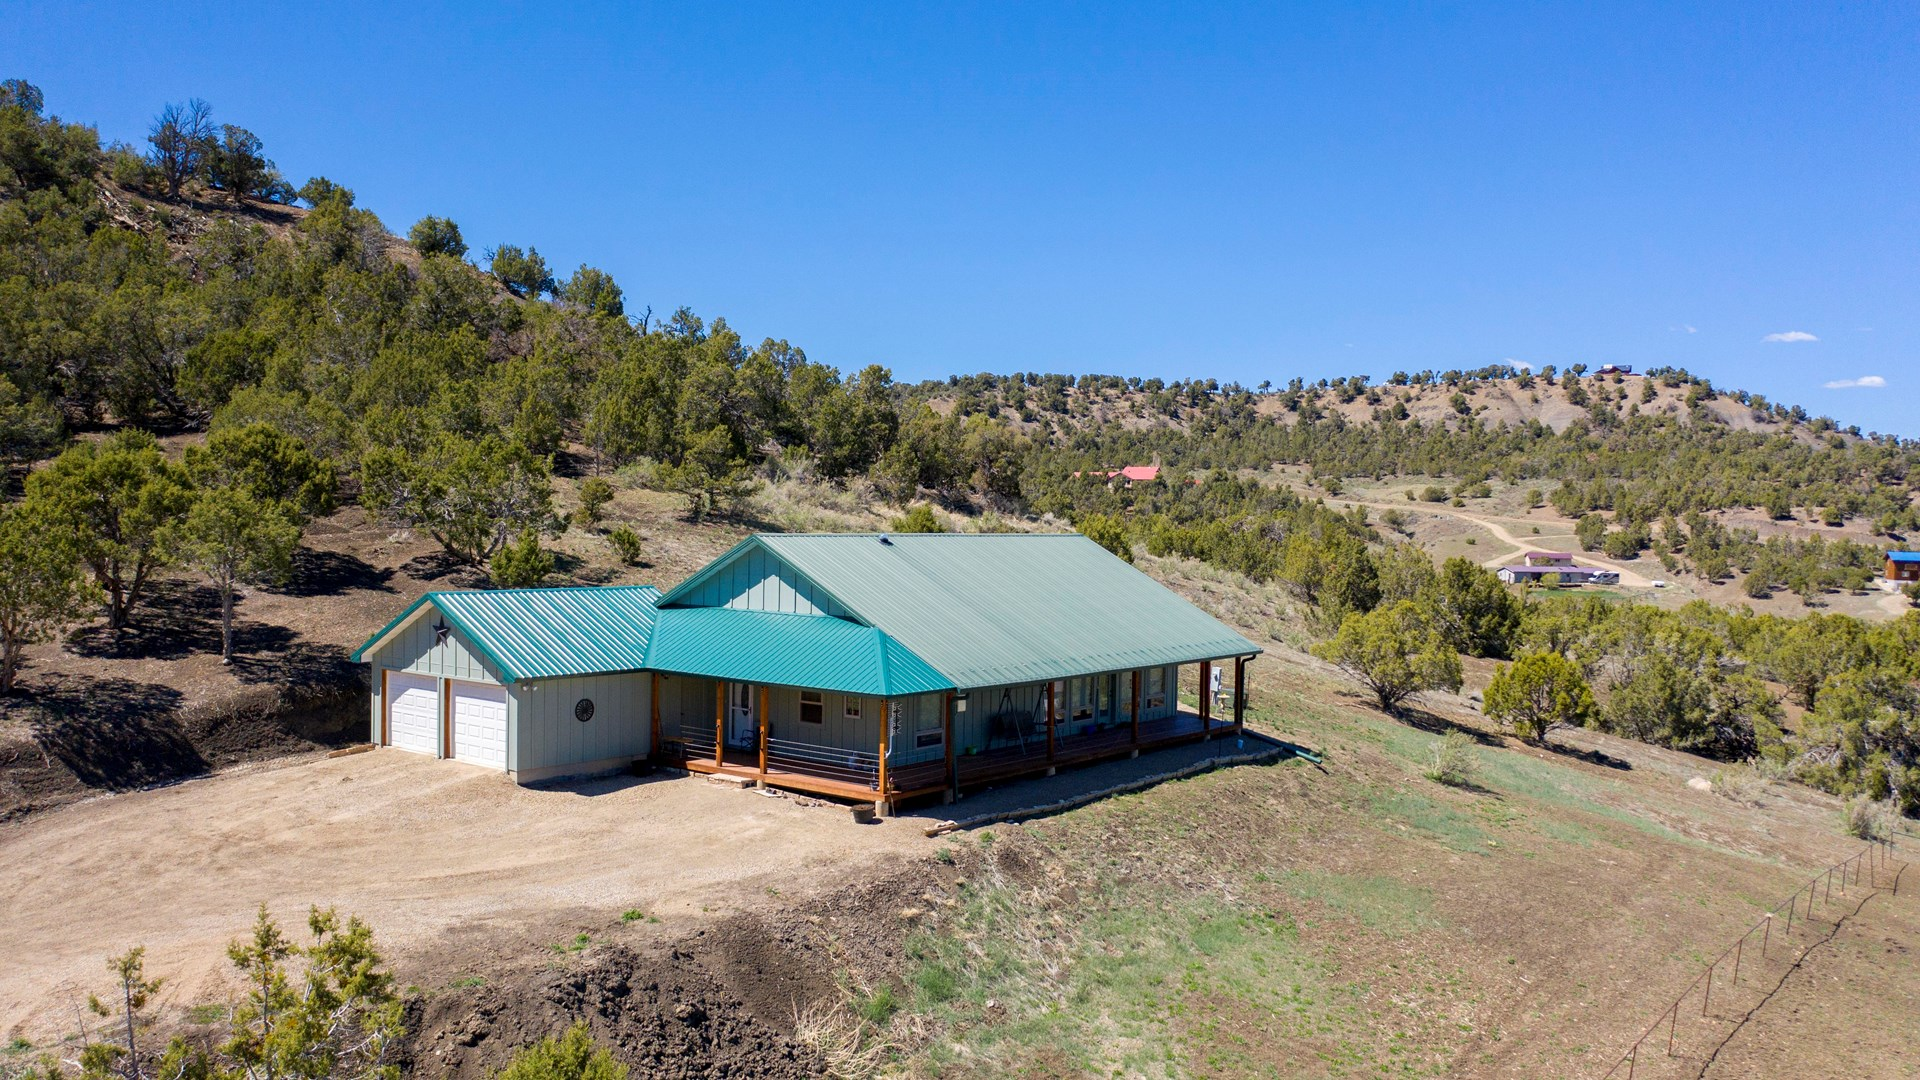 House close to BLM with amazing mountain views